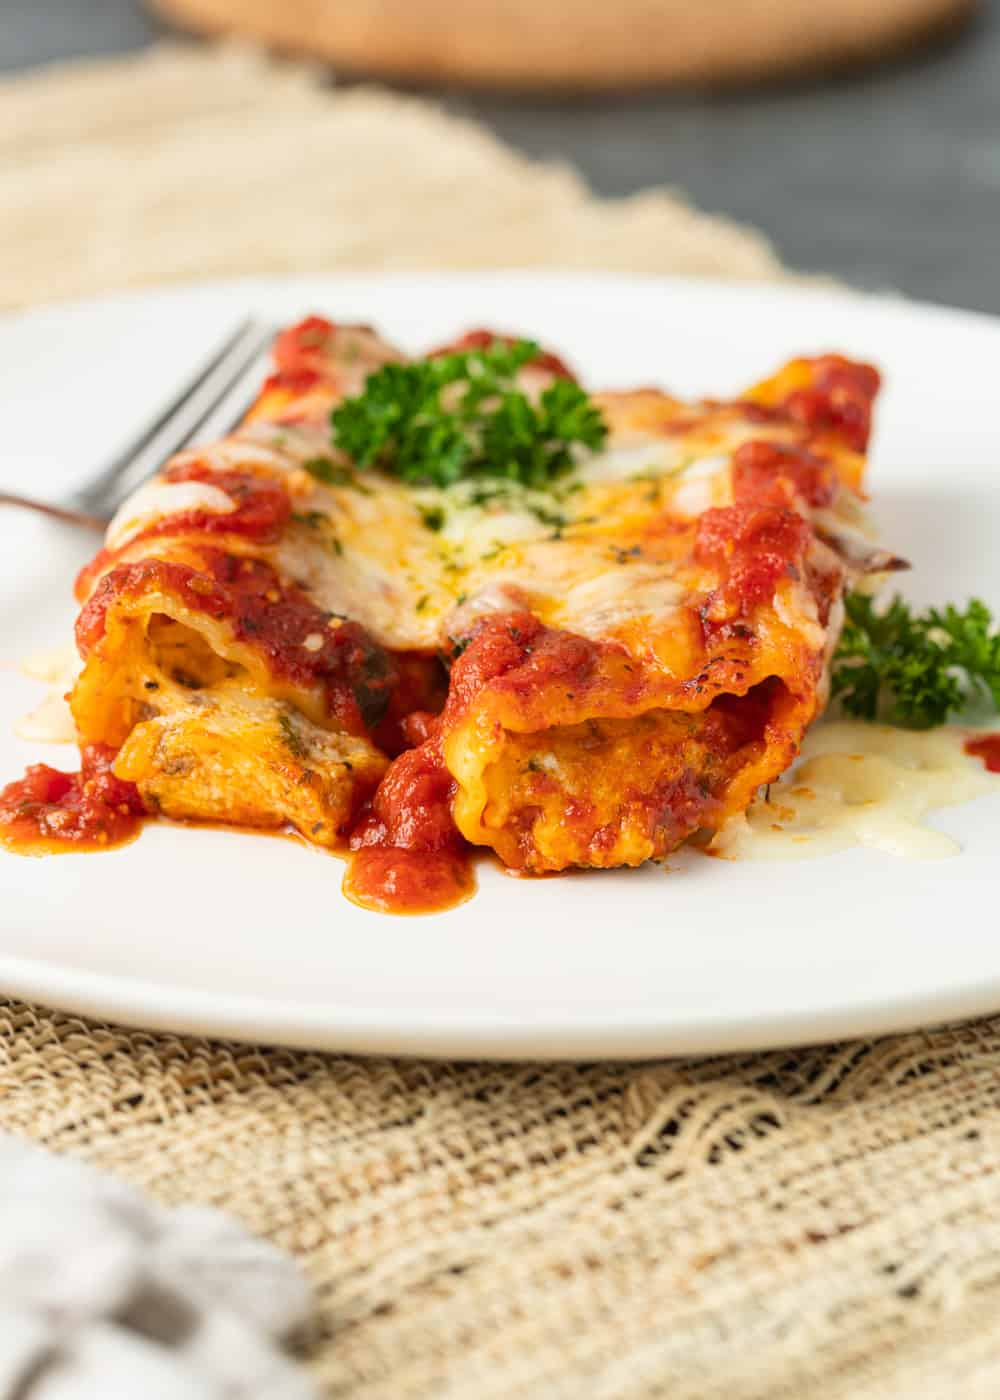 two manicotti with sauce and melted cheese on white plate